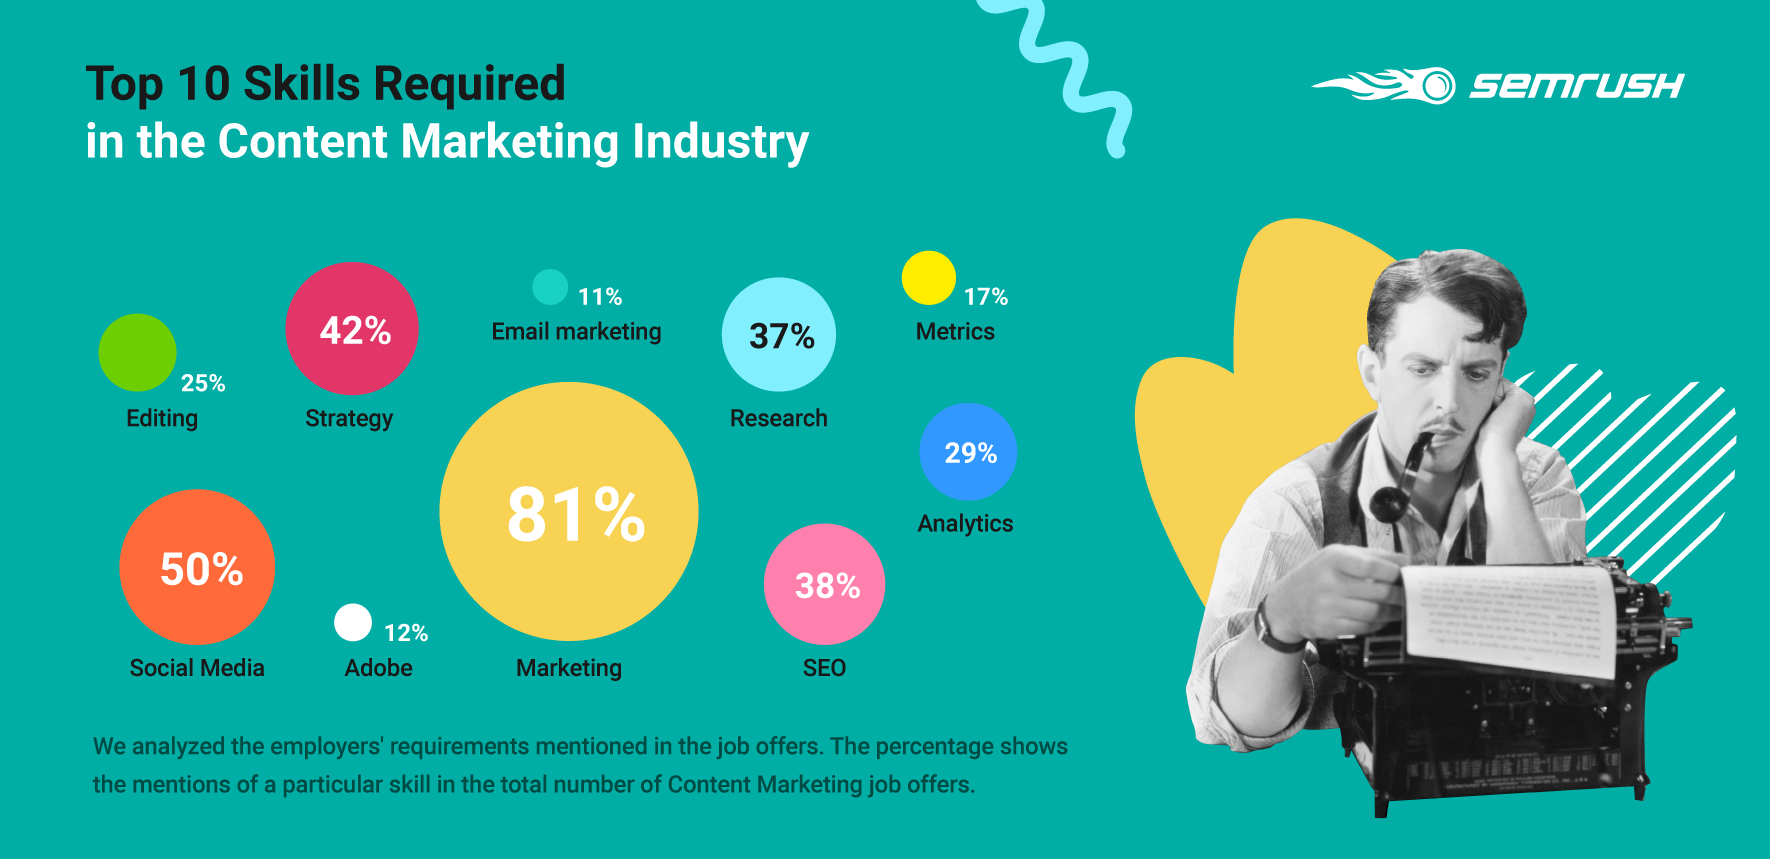 Top 10 Skills Required in the Content Marketing industry